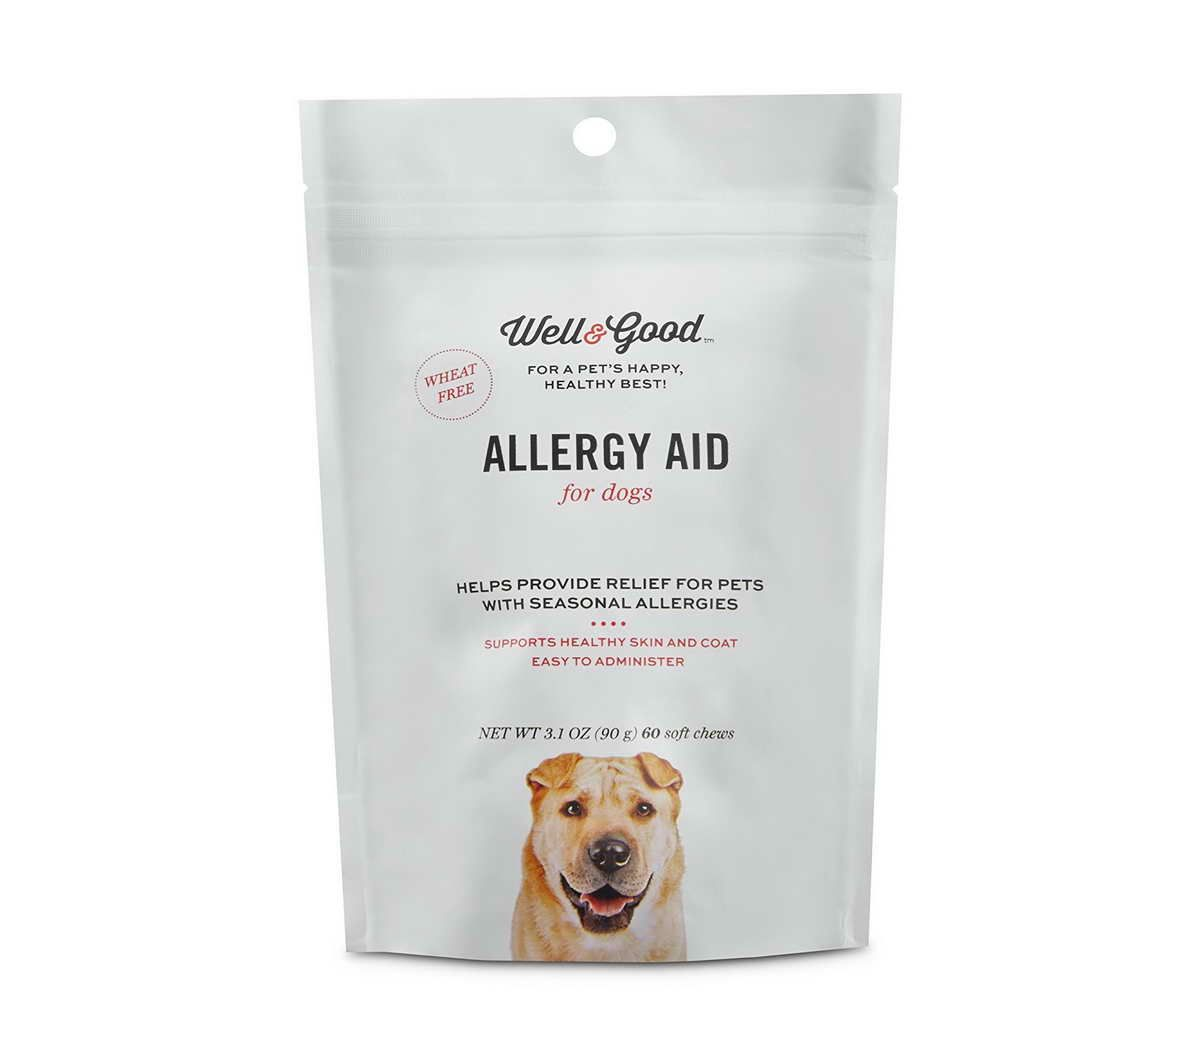 Best Dog Food For Dogs With Bad Allergies Best Dog Food For Dogs With Allergies Dogs